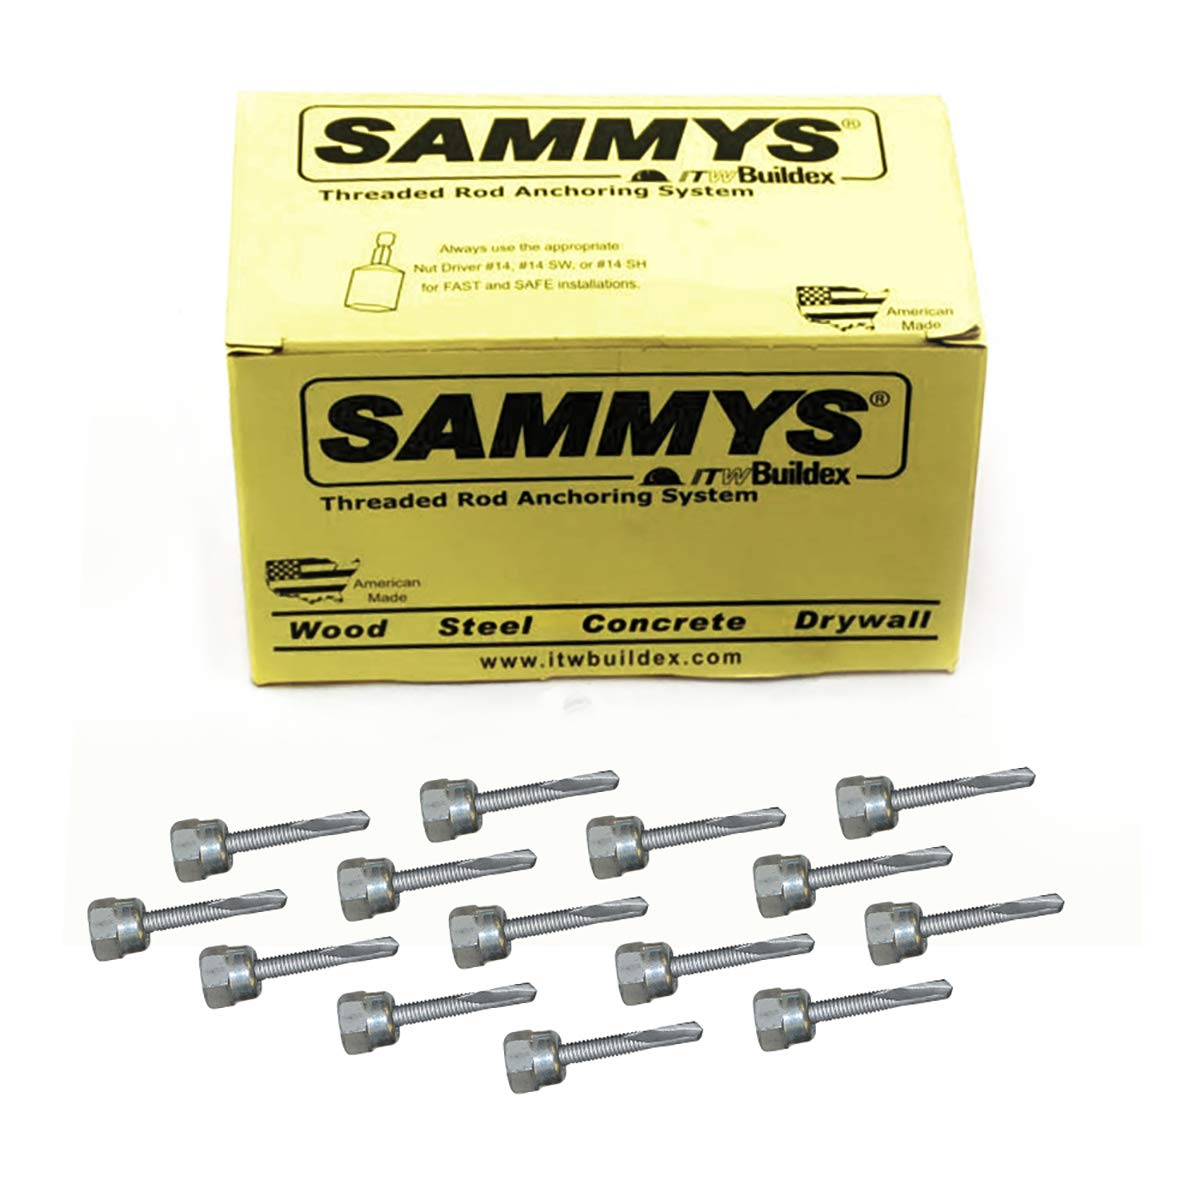 Sammys 8045957-25 Vertical Anchor Super Screw with 3/8 in. Threaded Rod Fitting 5/16-18 x 1 1/4, for for Steel 25 Pack Piece